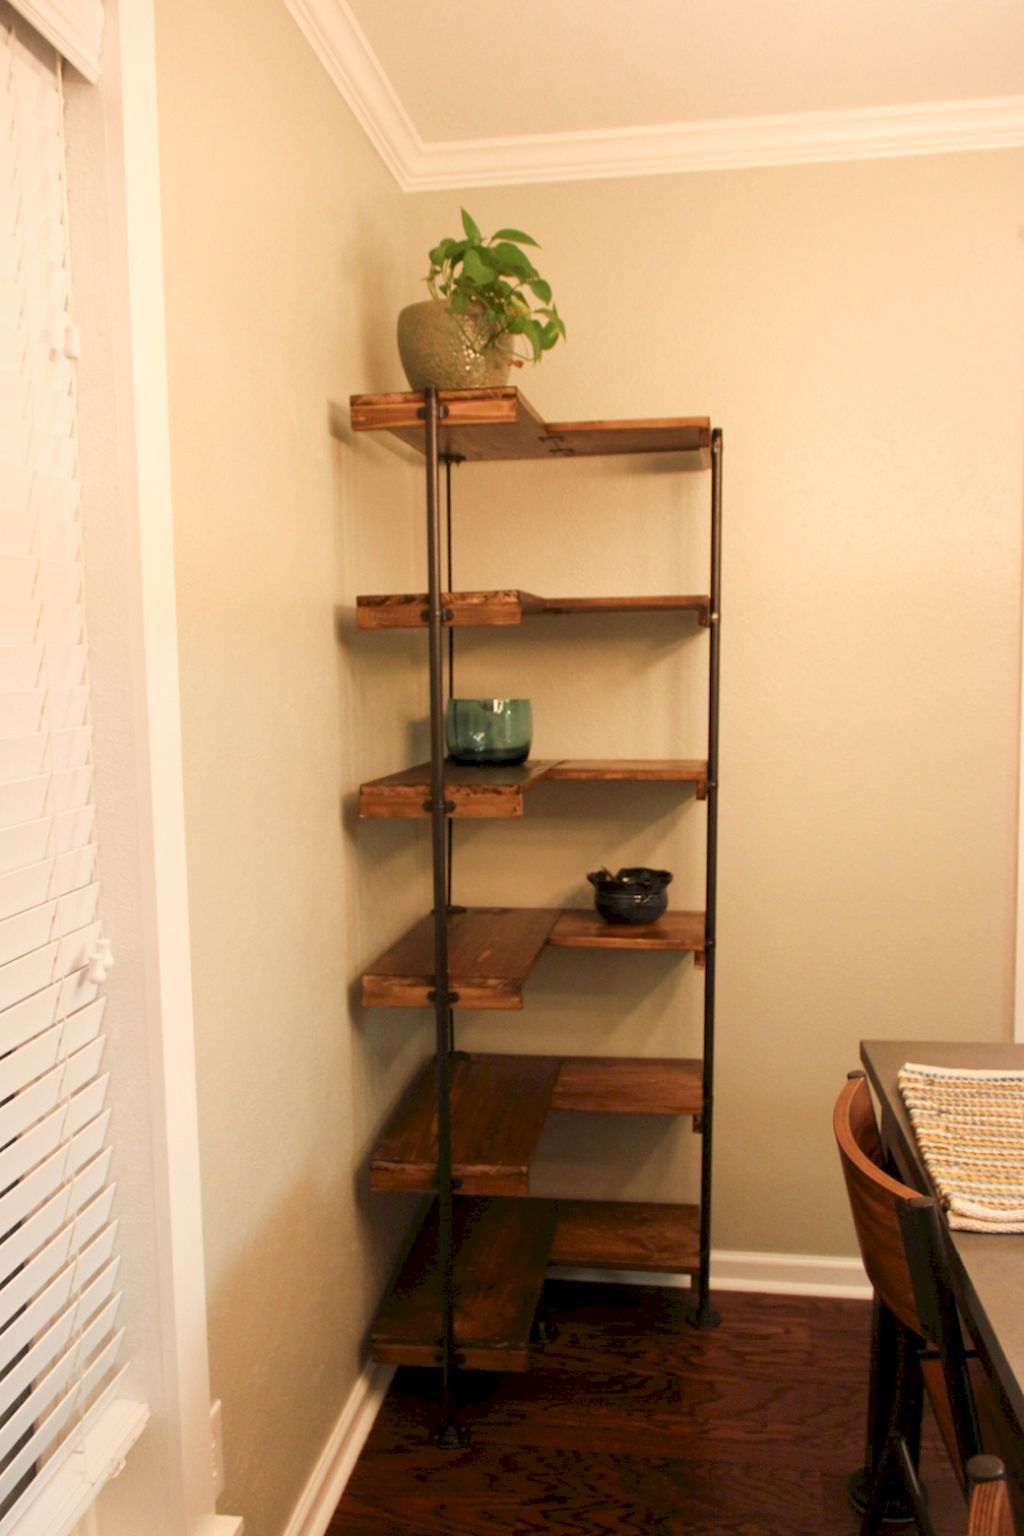 Awesome 30 diy small apartment corner shelves ideas https homstuff com